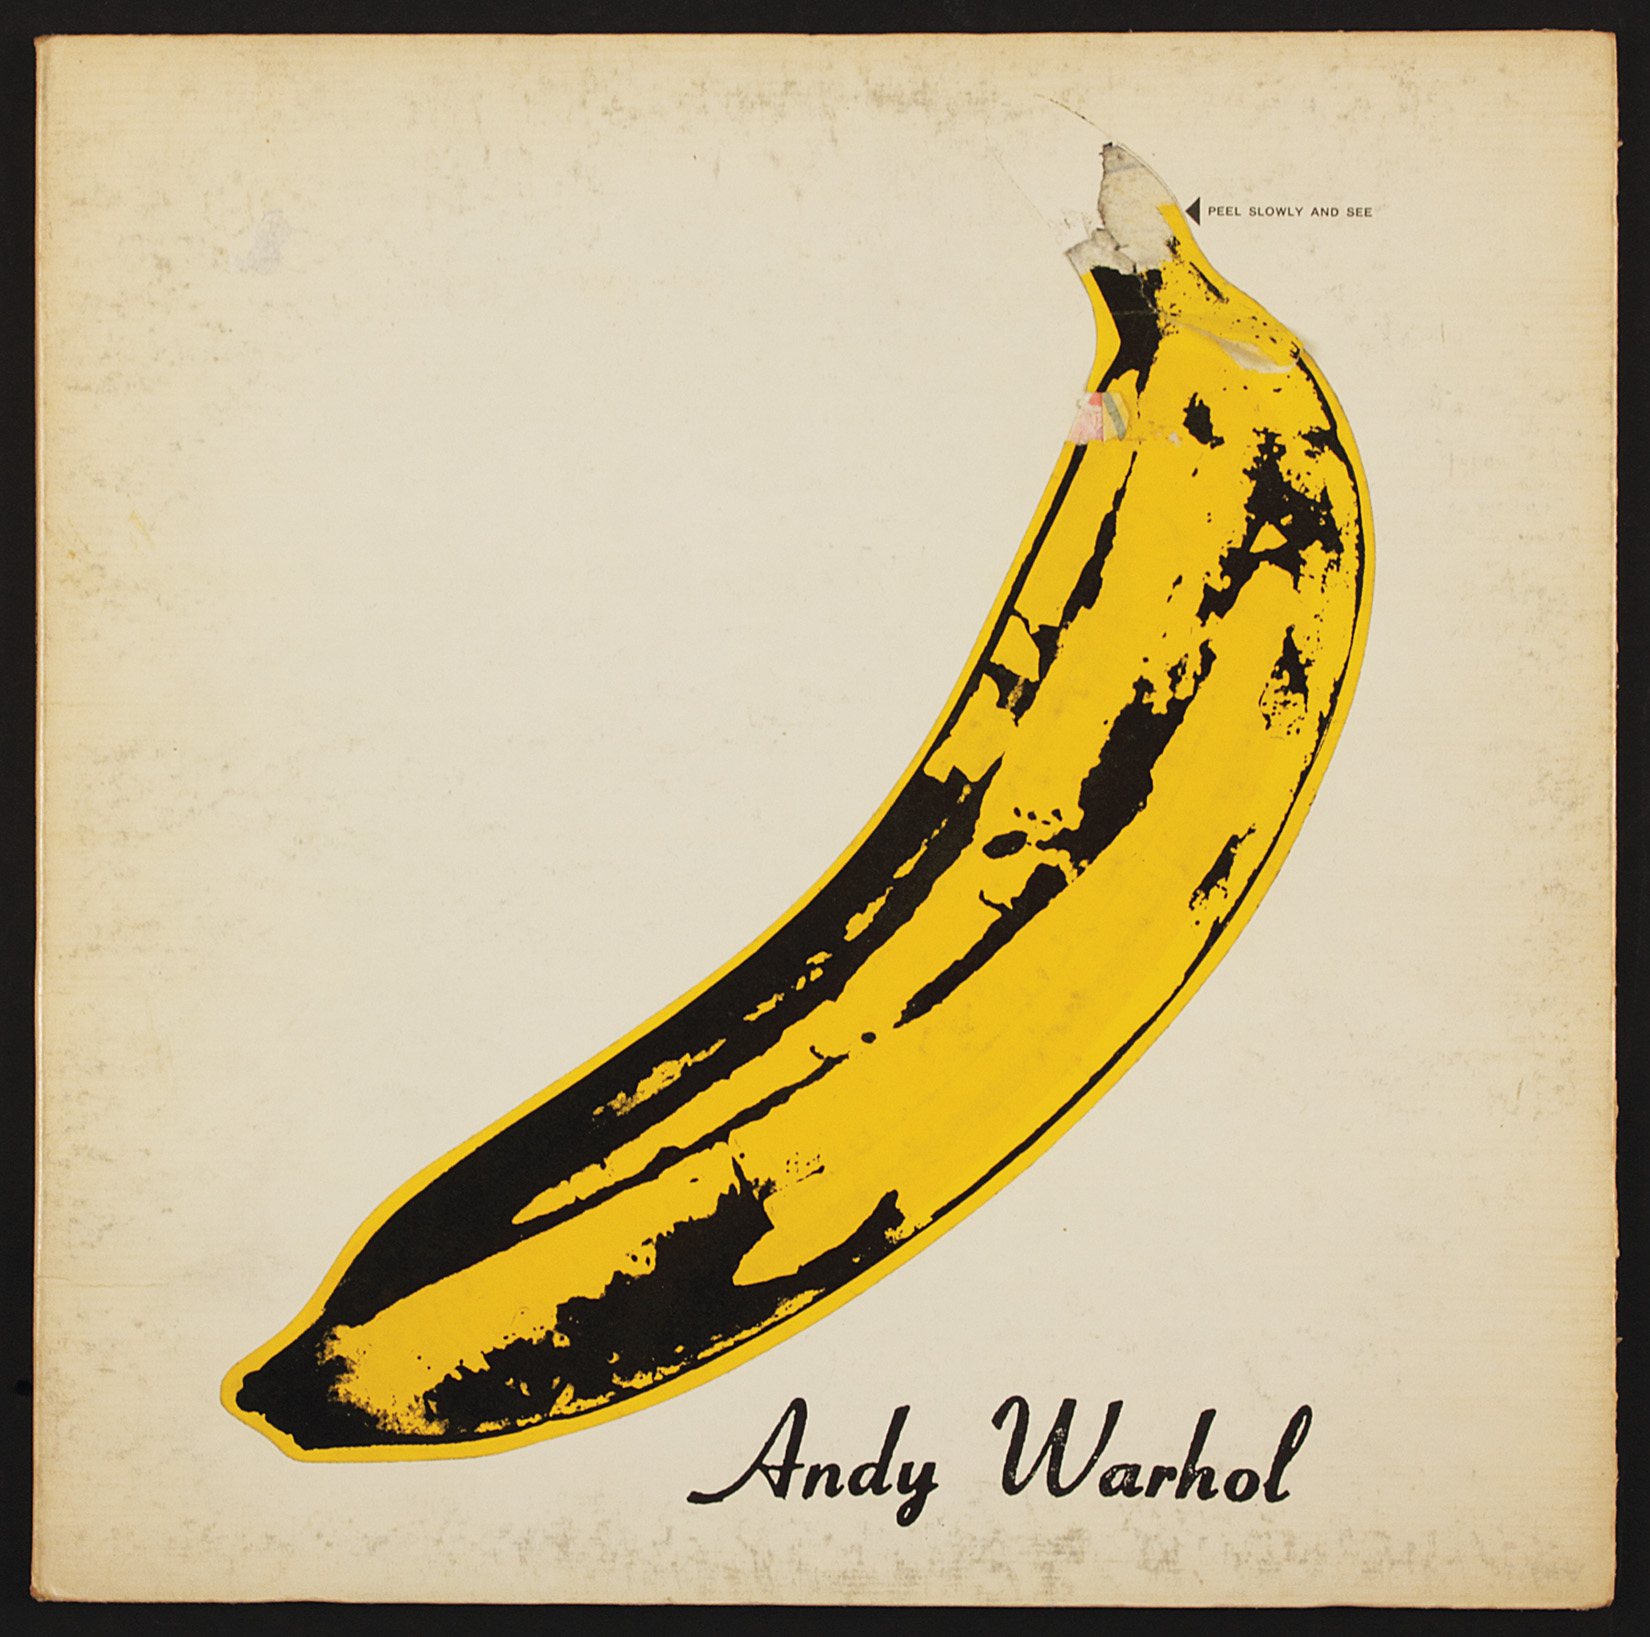 The Velvet Underground & Nico , released in March 1967